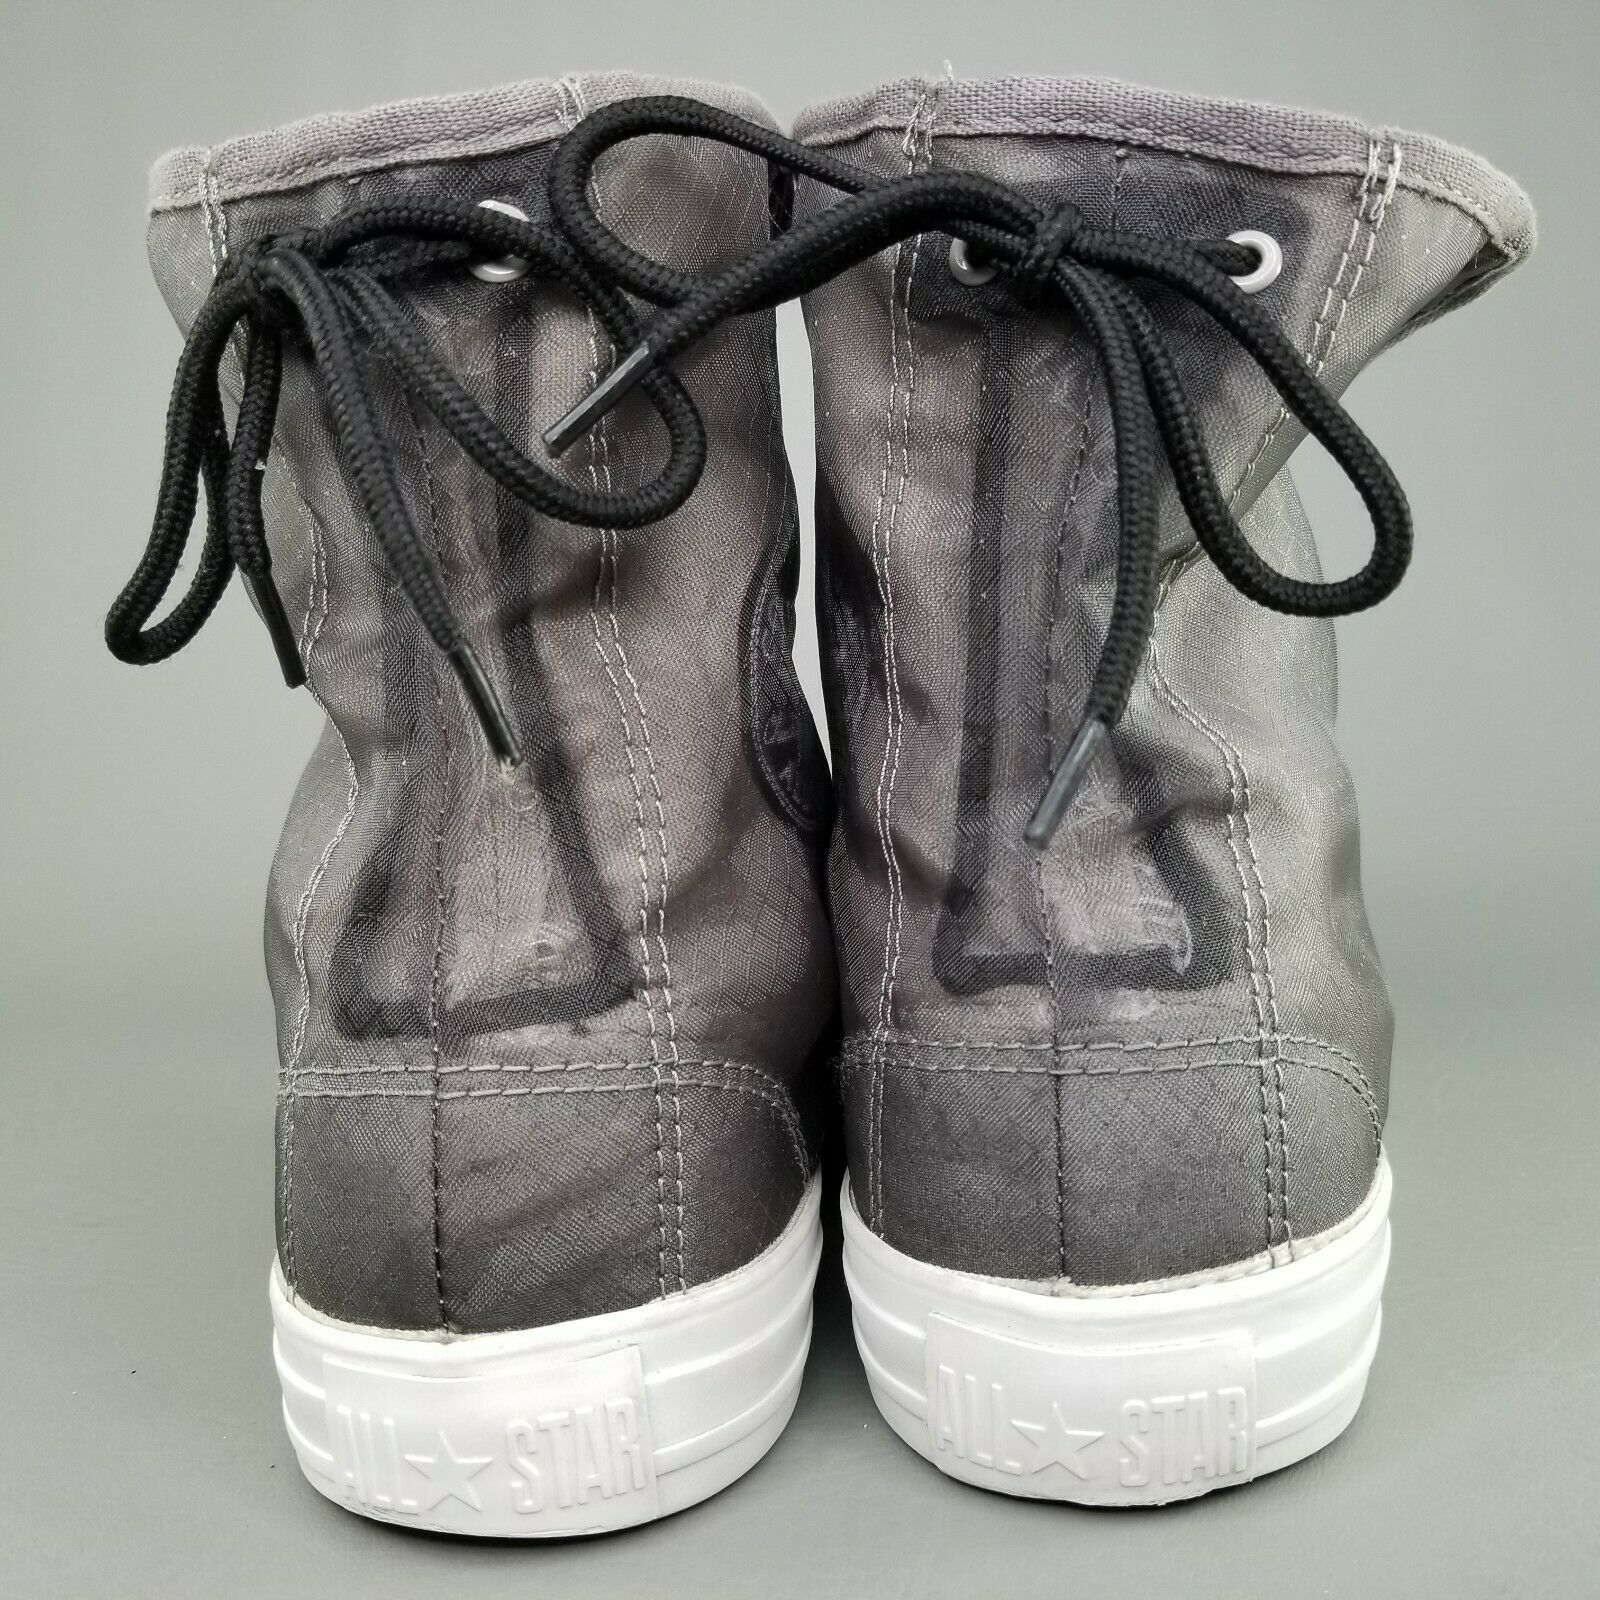 Converse CTAS Back Lace Hi Top Shoes Womens SZ 8 See Through Chucks Gray White image 8